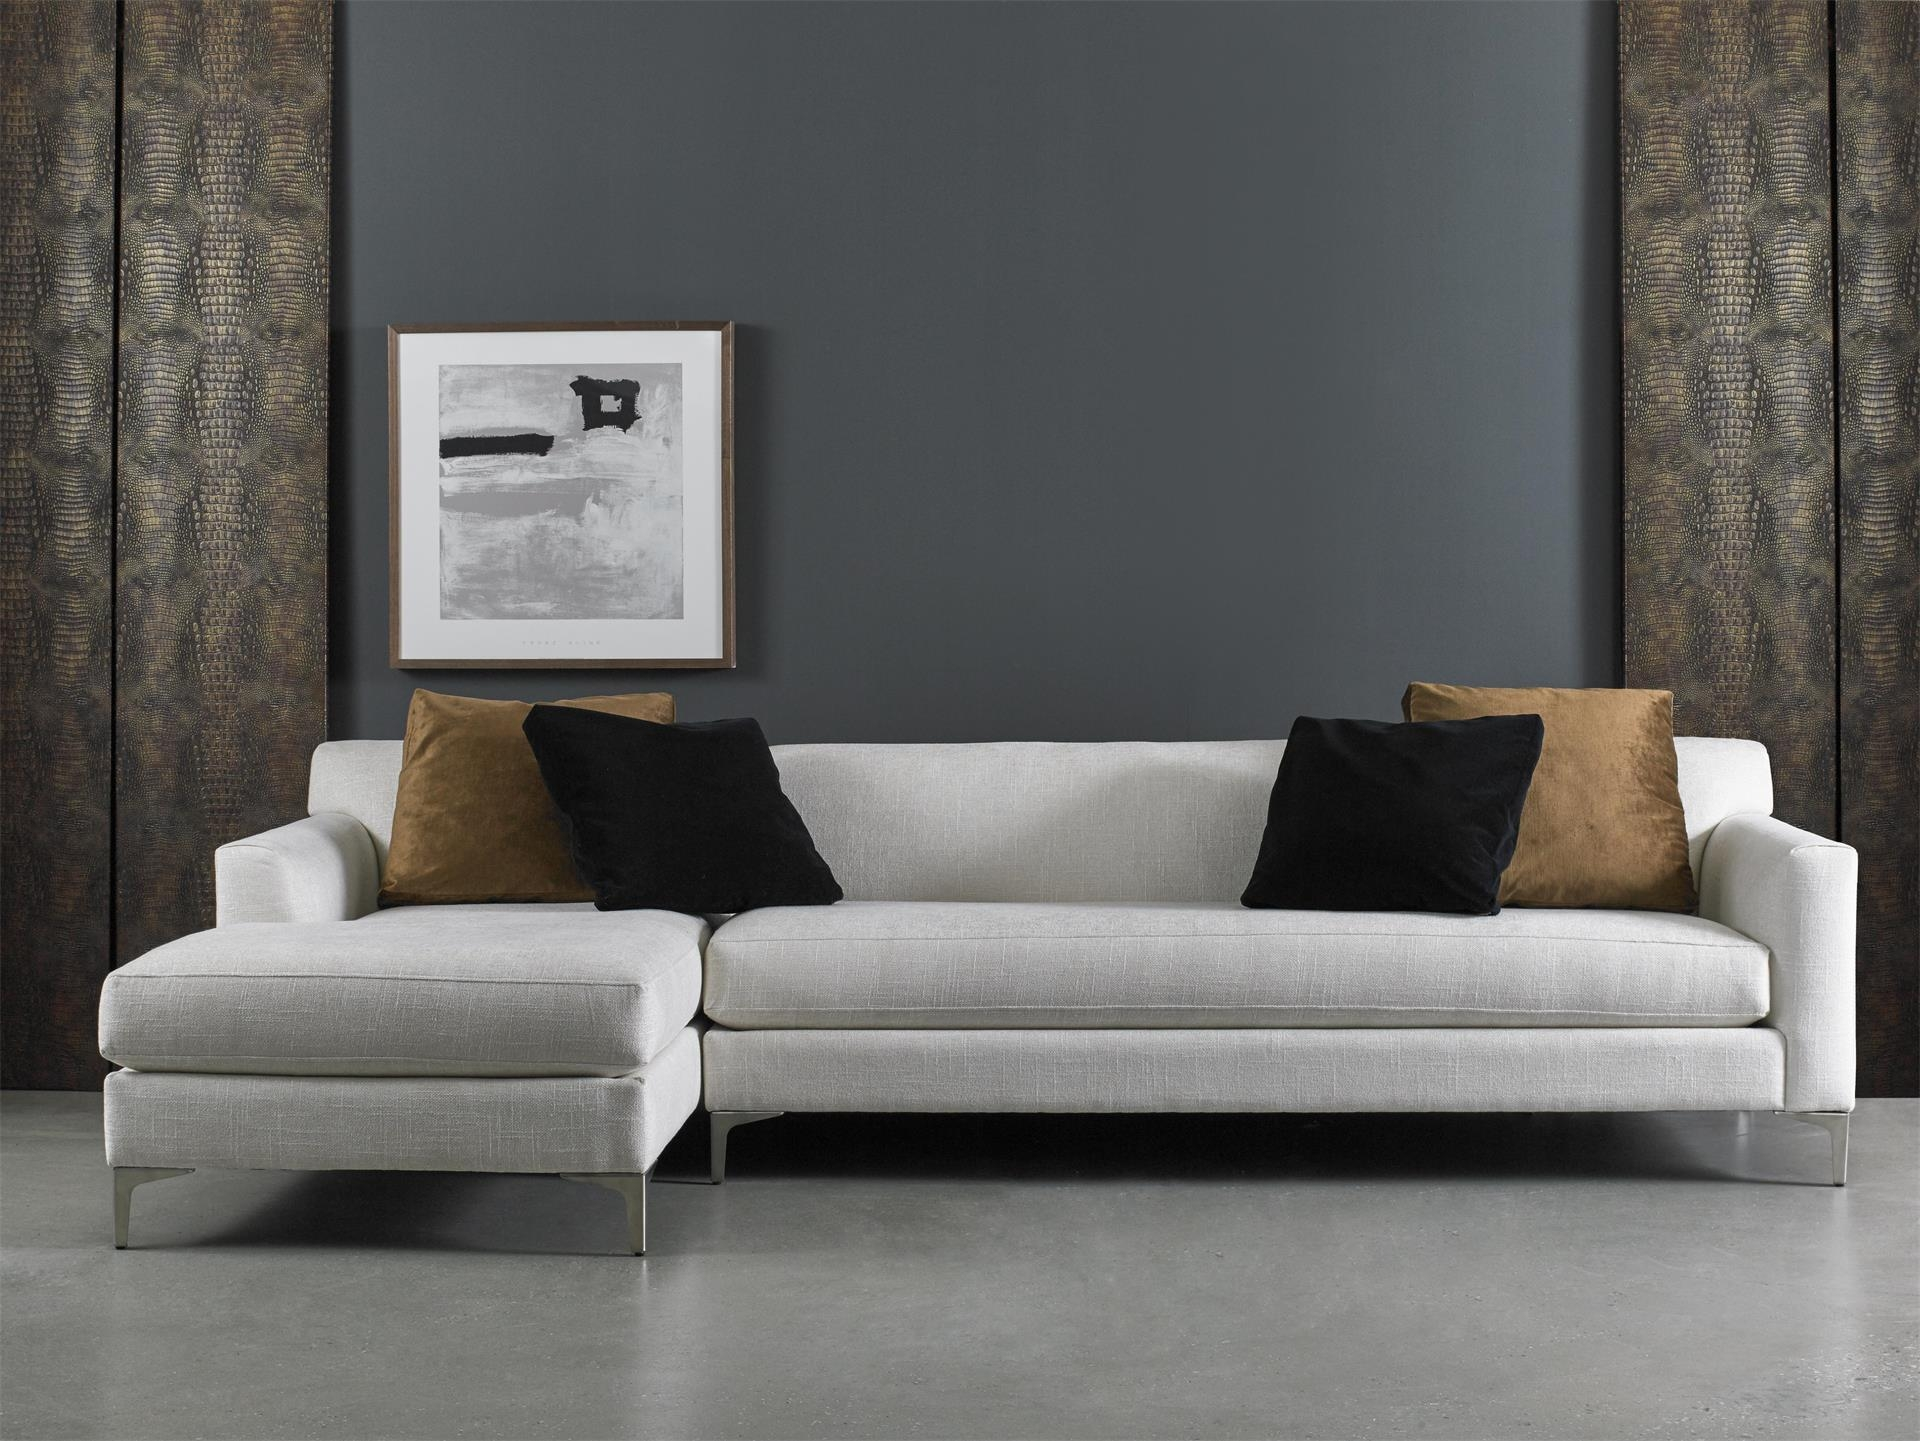 Caryssa Sofa Sectionalprecedent From Dutchcrafters Throughout Precedent Sofas (Image 5 of 20)